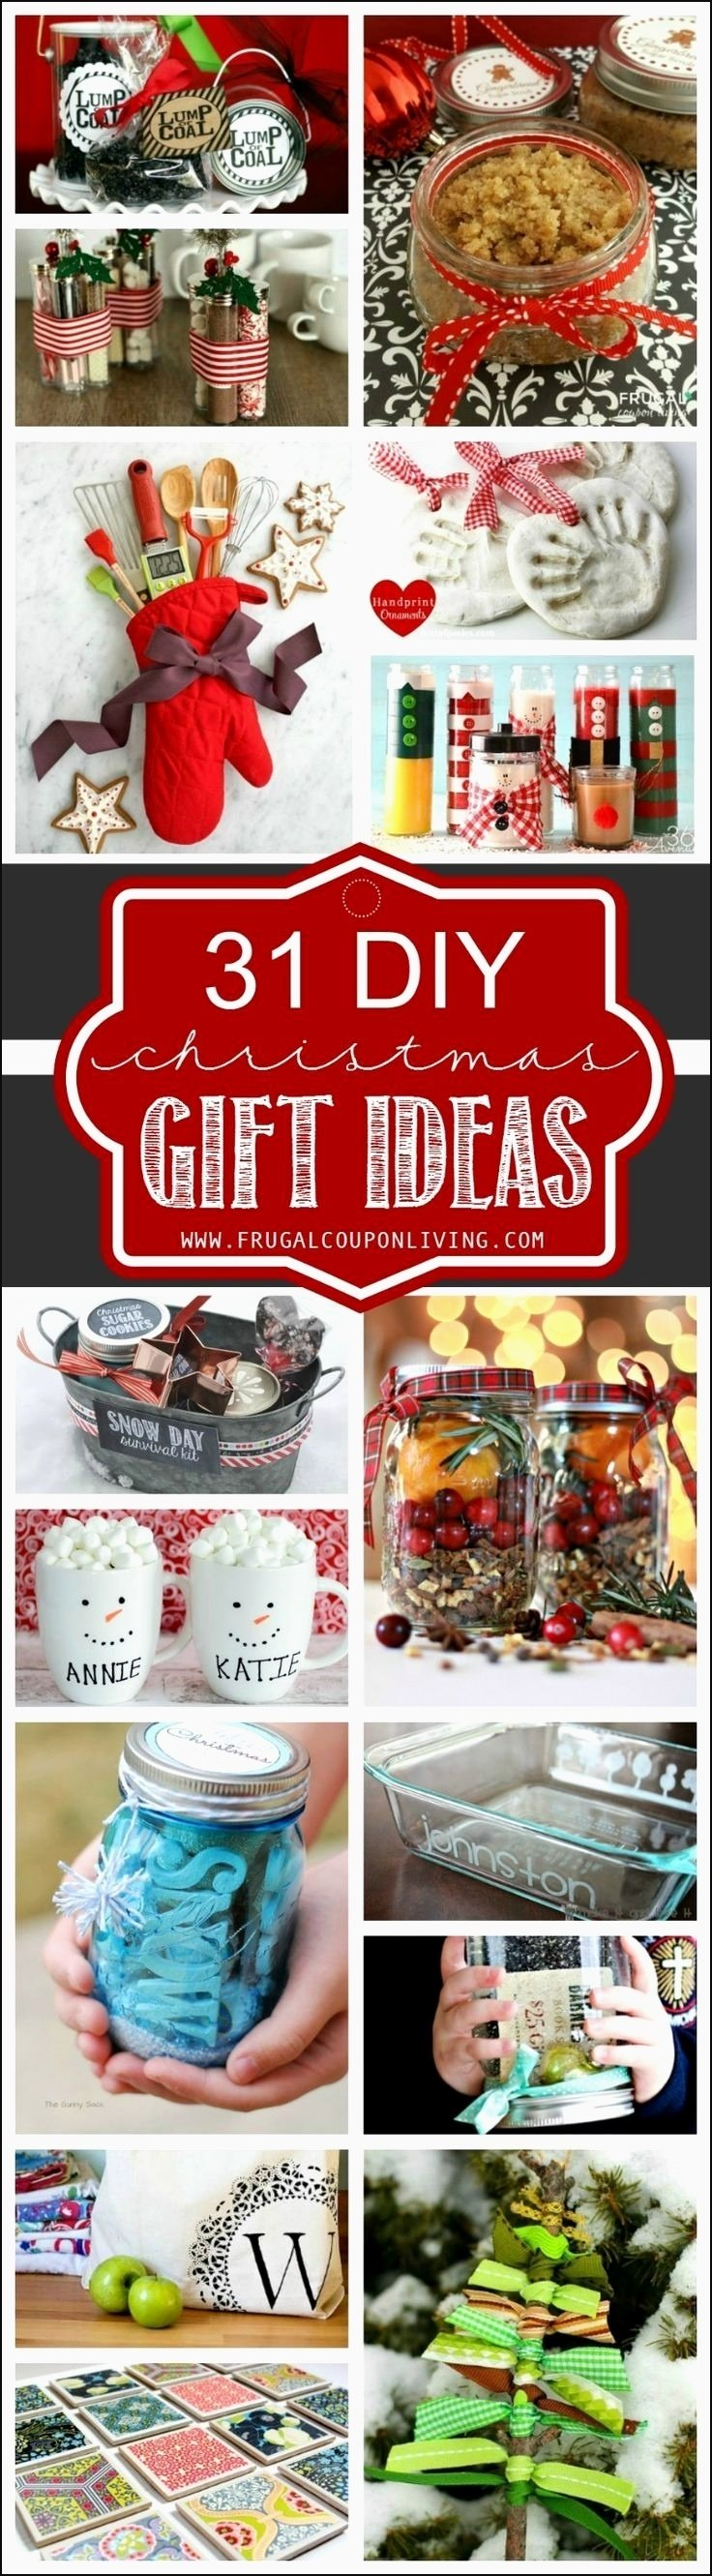 10 Wonderful Christmas Gift Ideas For Couples